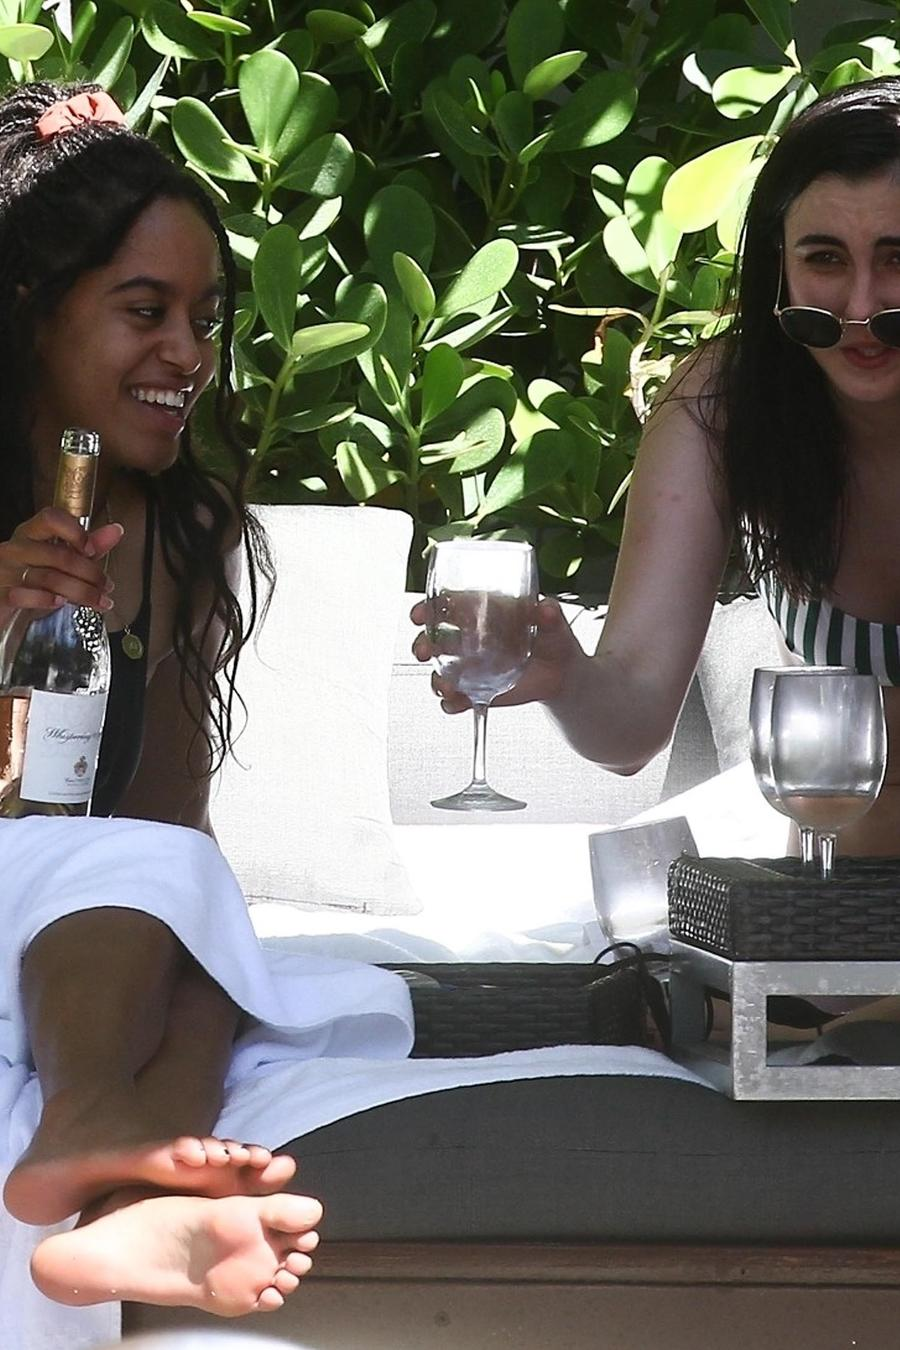 Hija mayor de los Obama, Malia, es captada bebiendo alcohol.